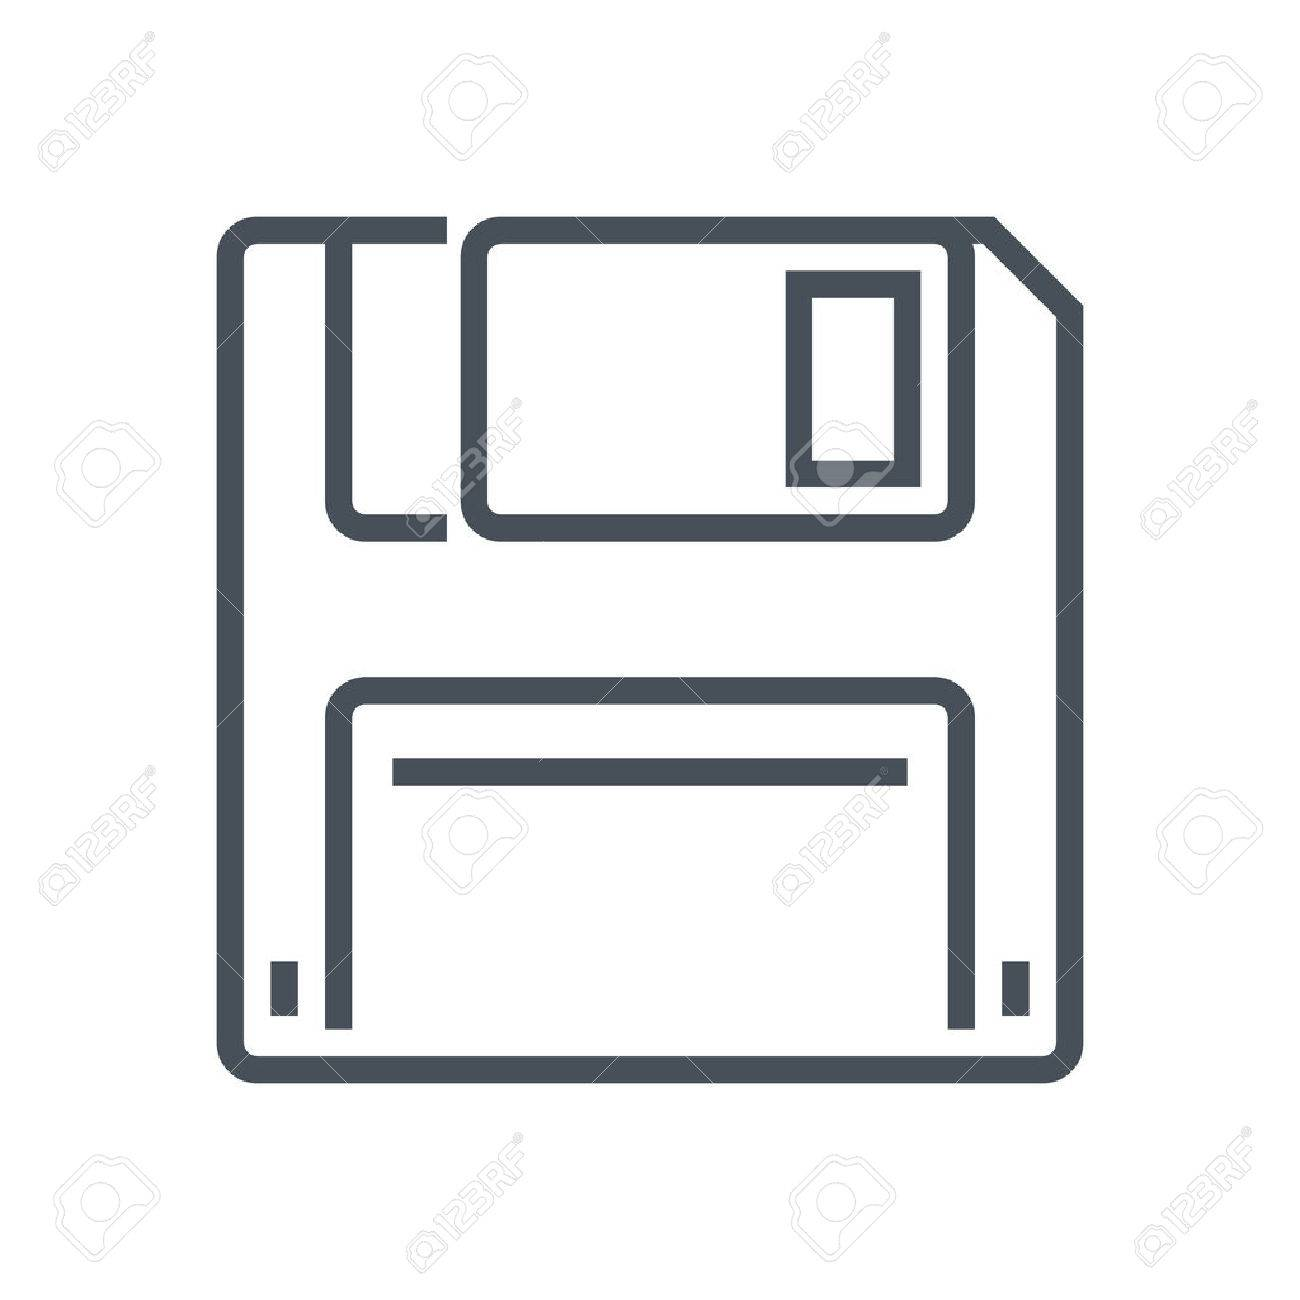 Floppy diskette, save icon suitable for info graphics, websites and print media and interfaces. Line vector icon. - 55927734